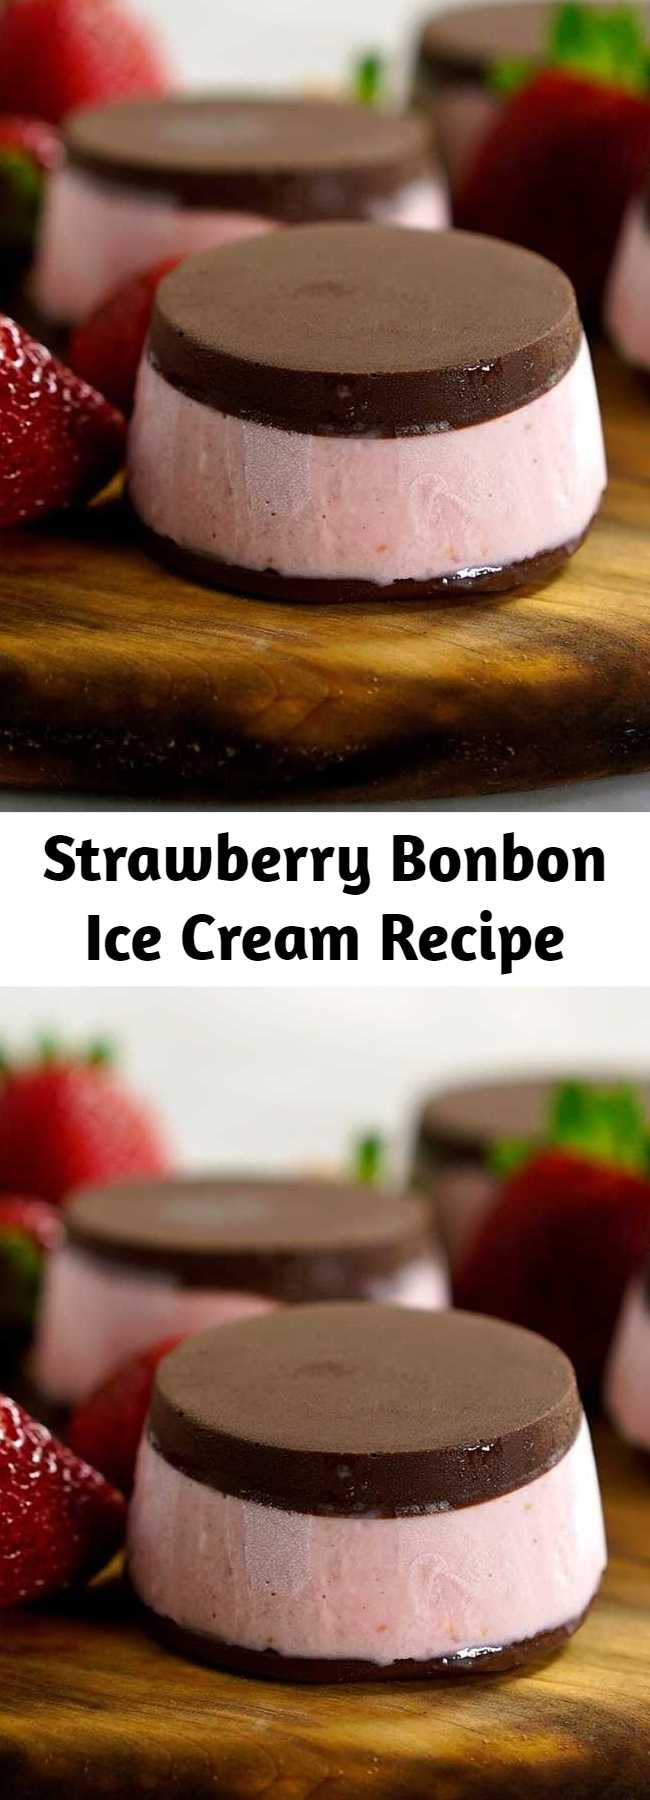 Strawberry Bonbon Ice Cream Recipe - Think of this as rich and fruity strawberry ice cream sandwiched between two incredible chocolate discs.